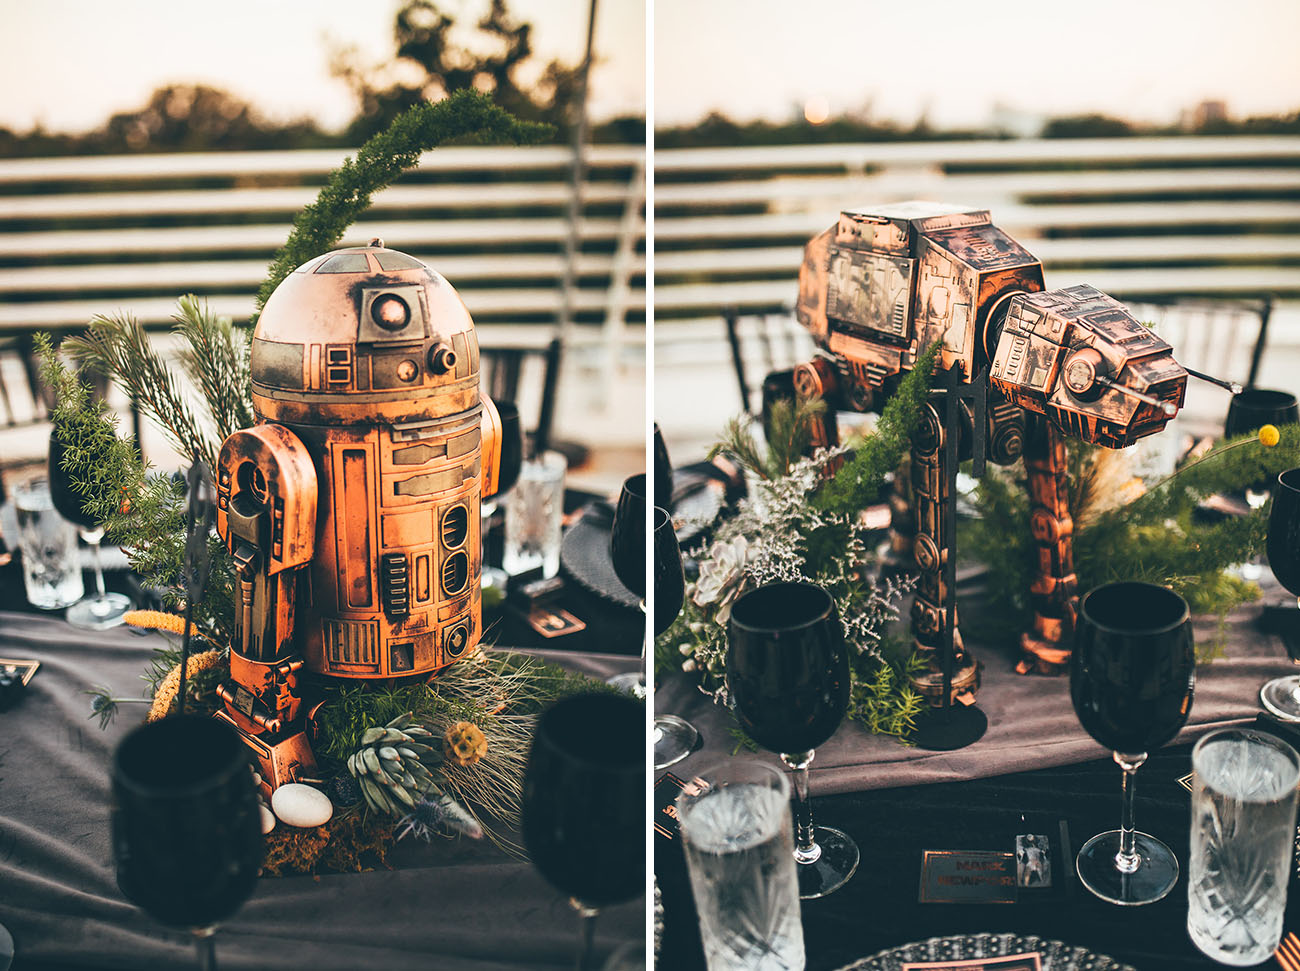 c3po table decor